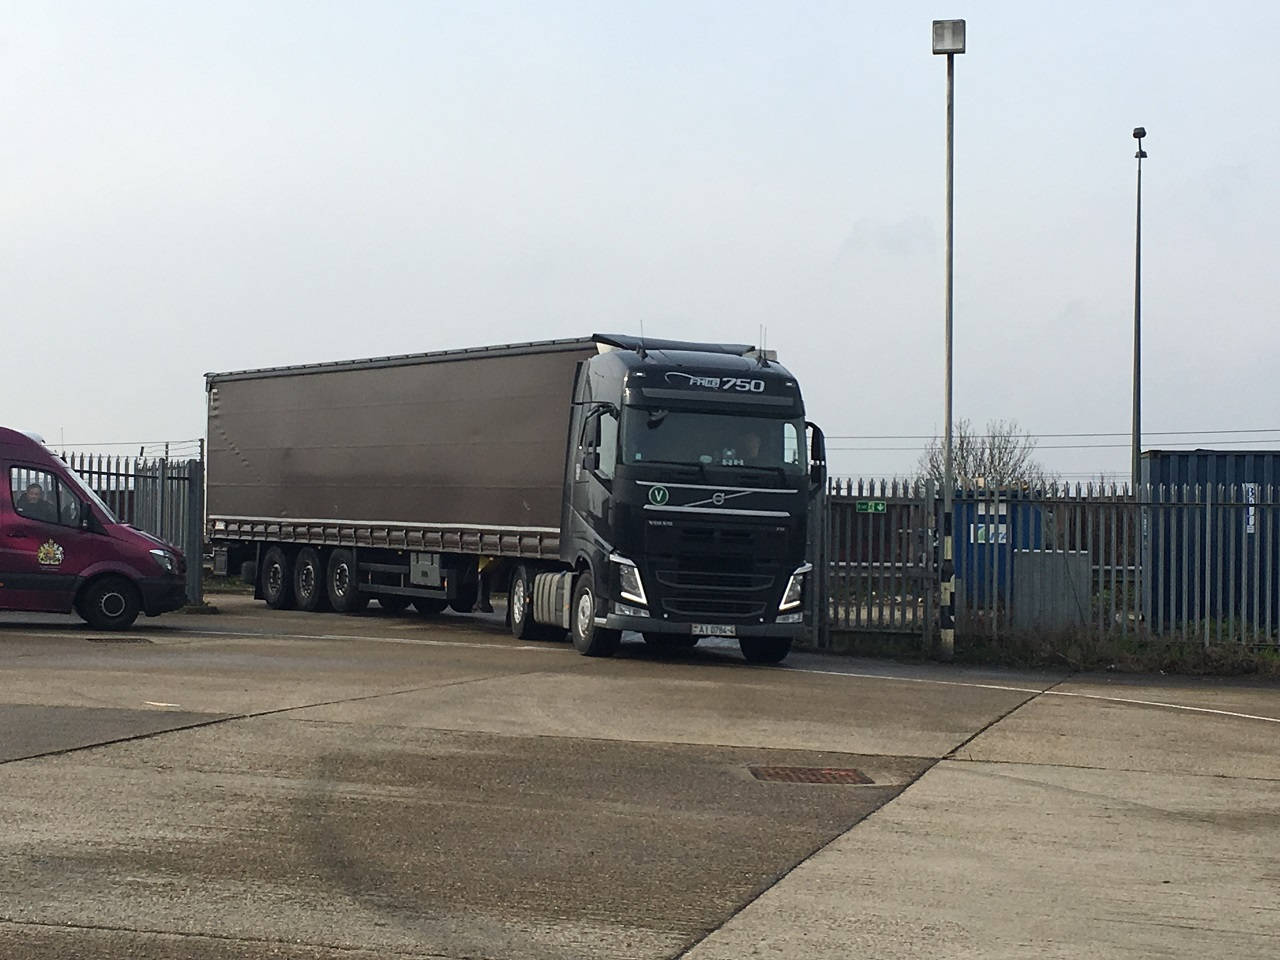 40-foot container of humanitarian aid departs for Belarus